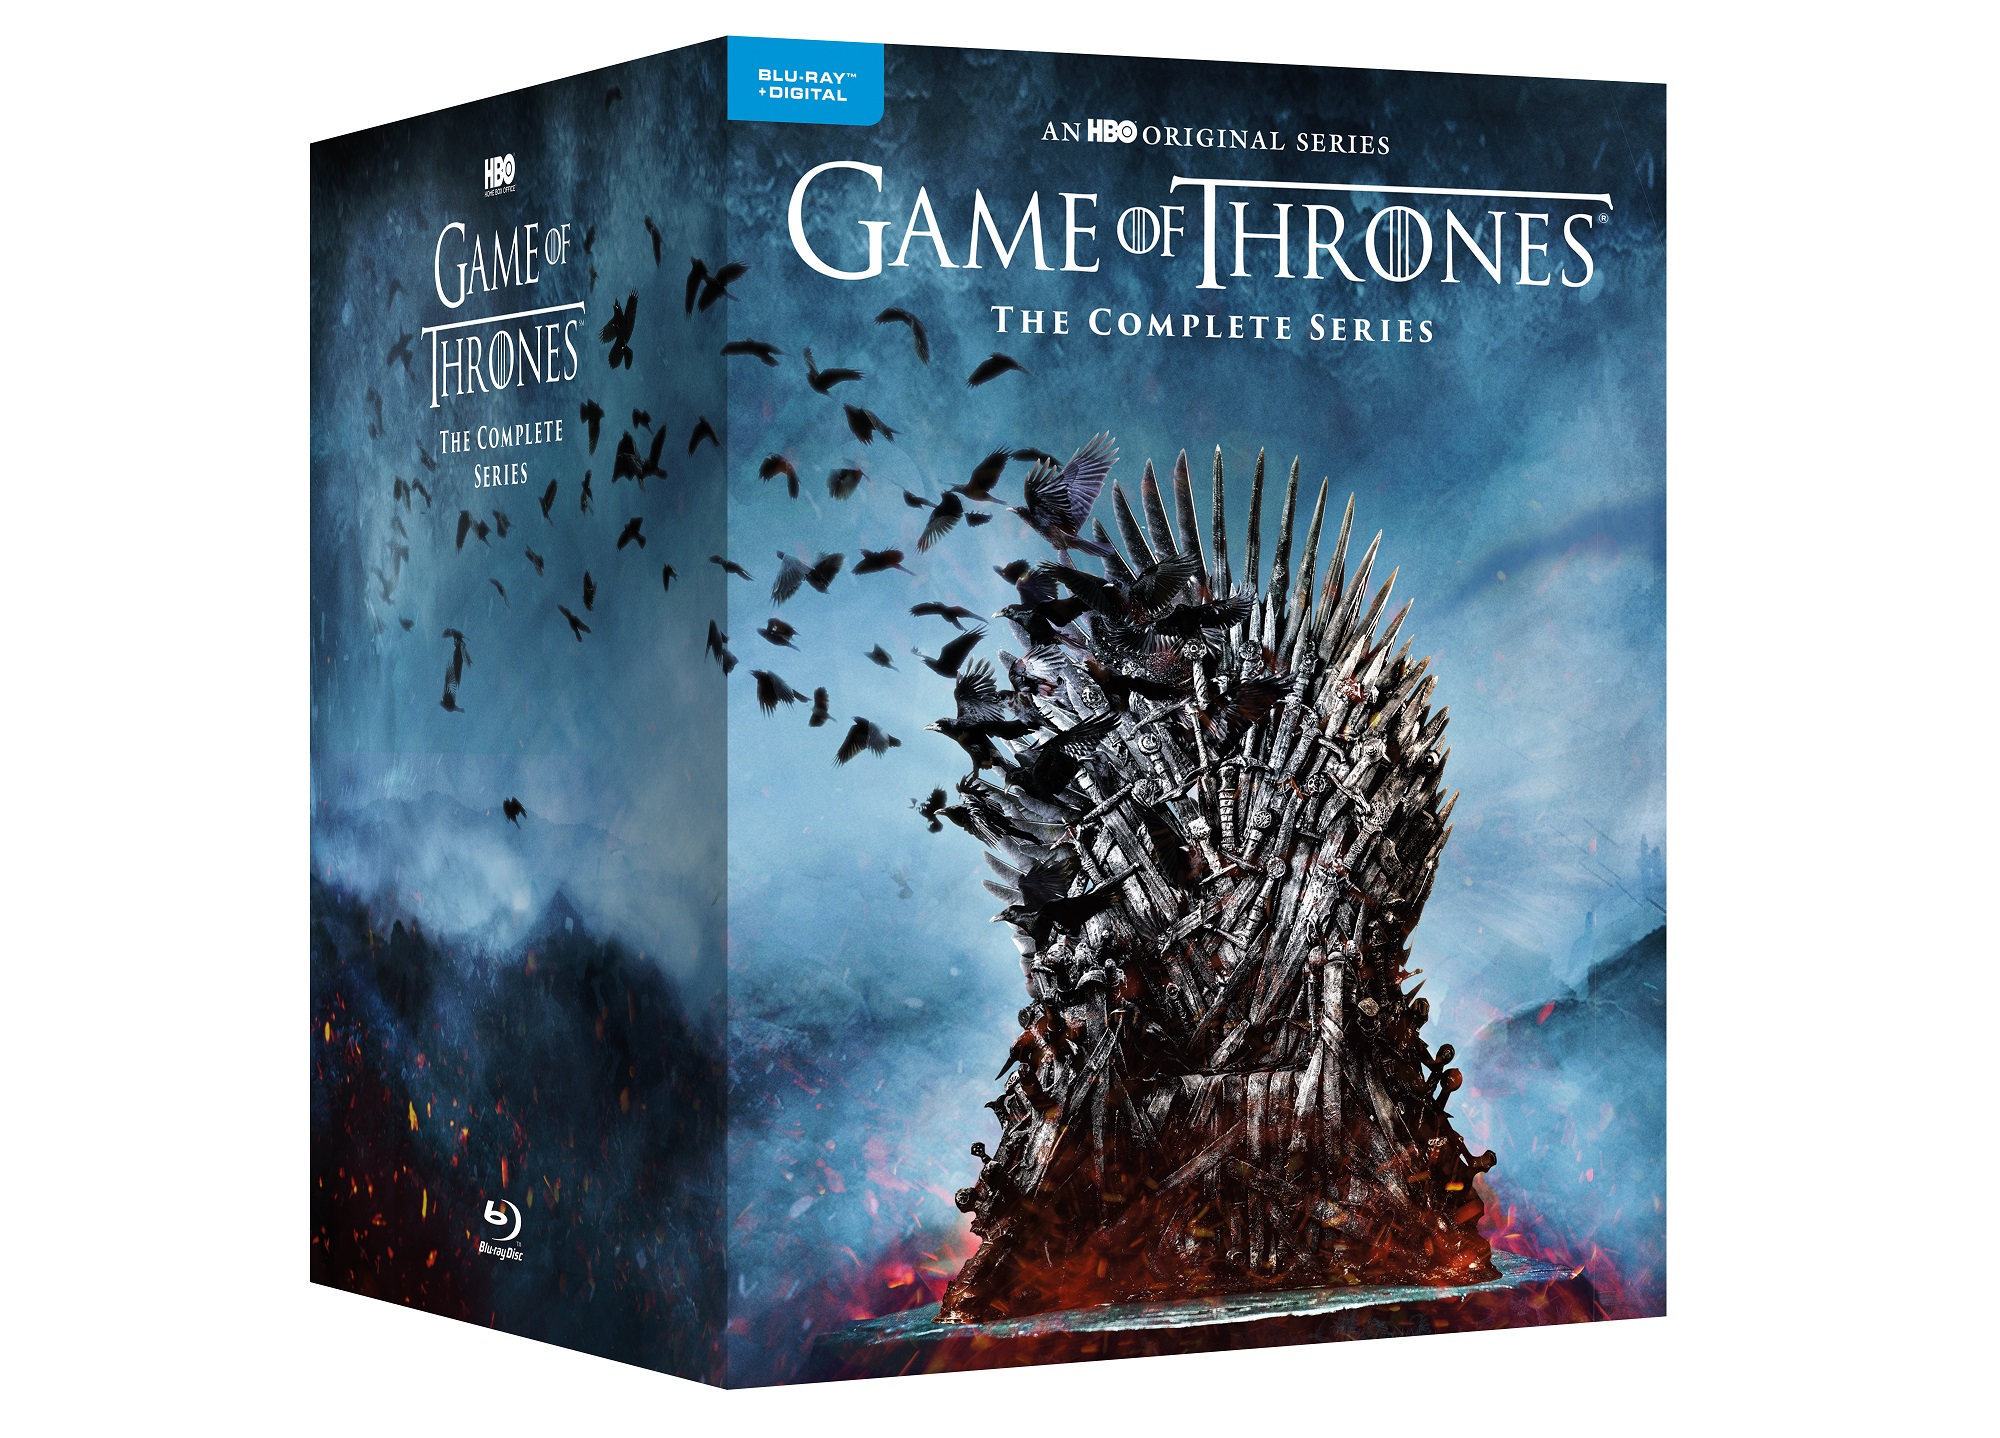 game of thrones complete collection bluray